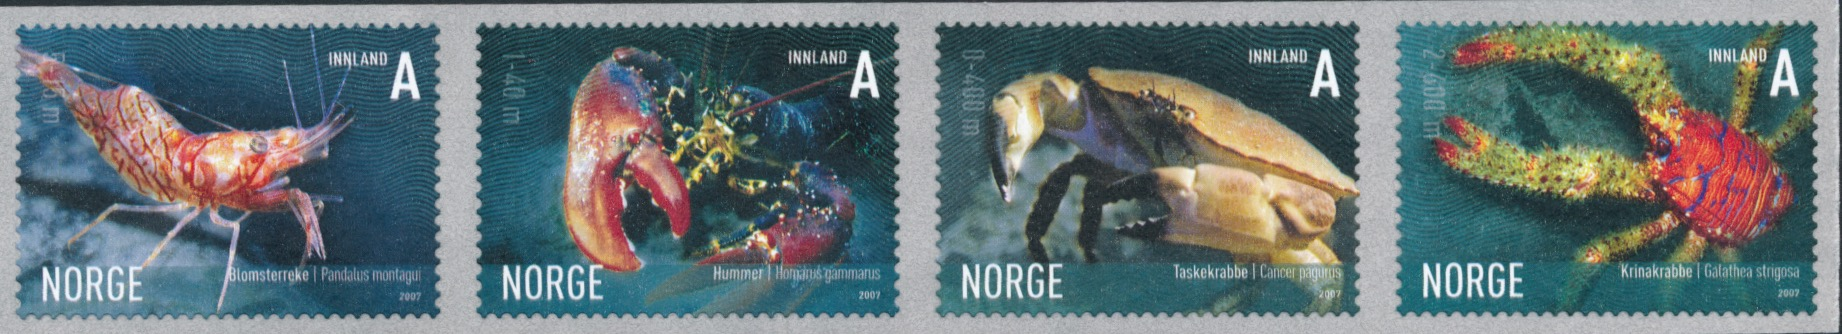 https://www.norstamps.com/content/images/stamps/norway/1660-63.jpeg